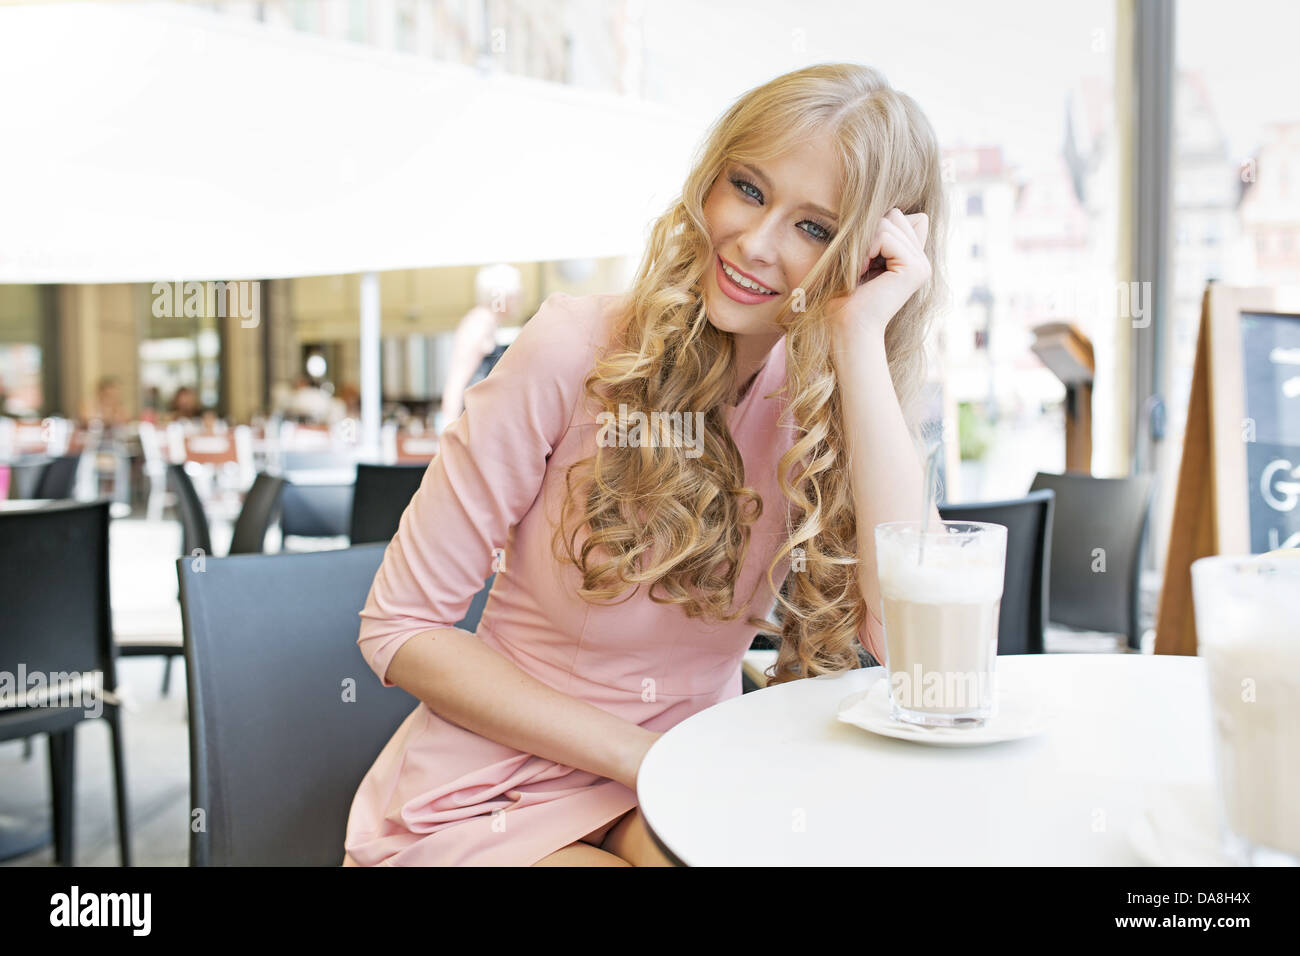 Amazing young woman with tempting smile - Stock Image